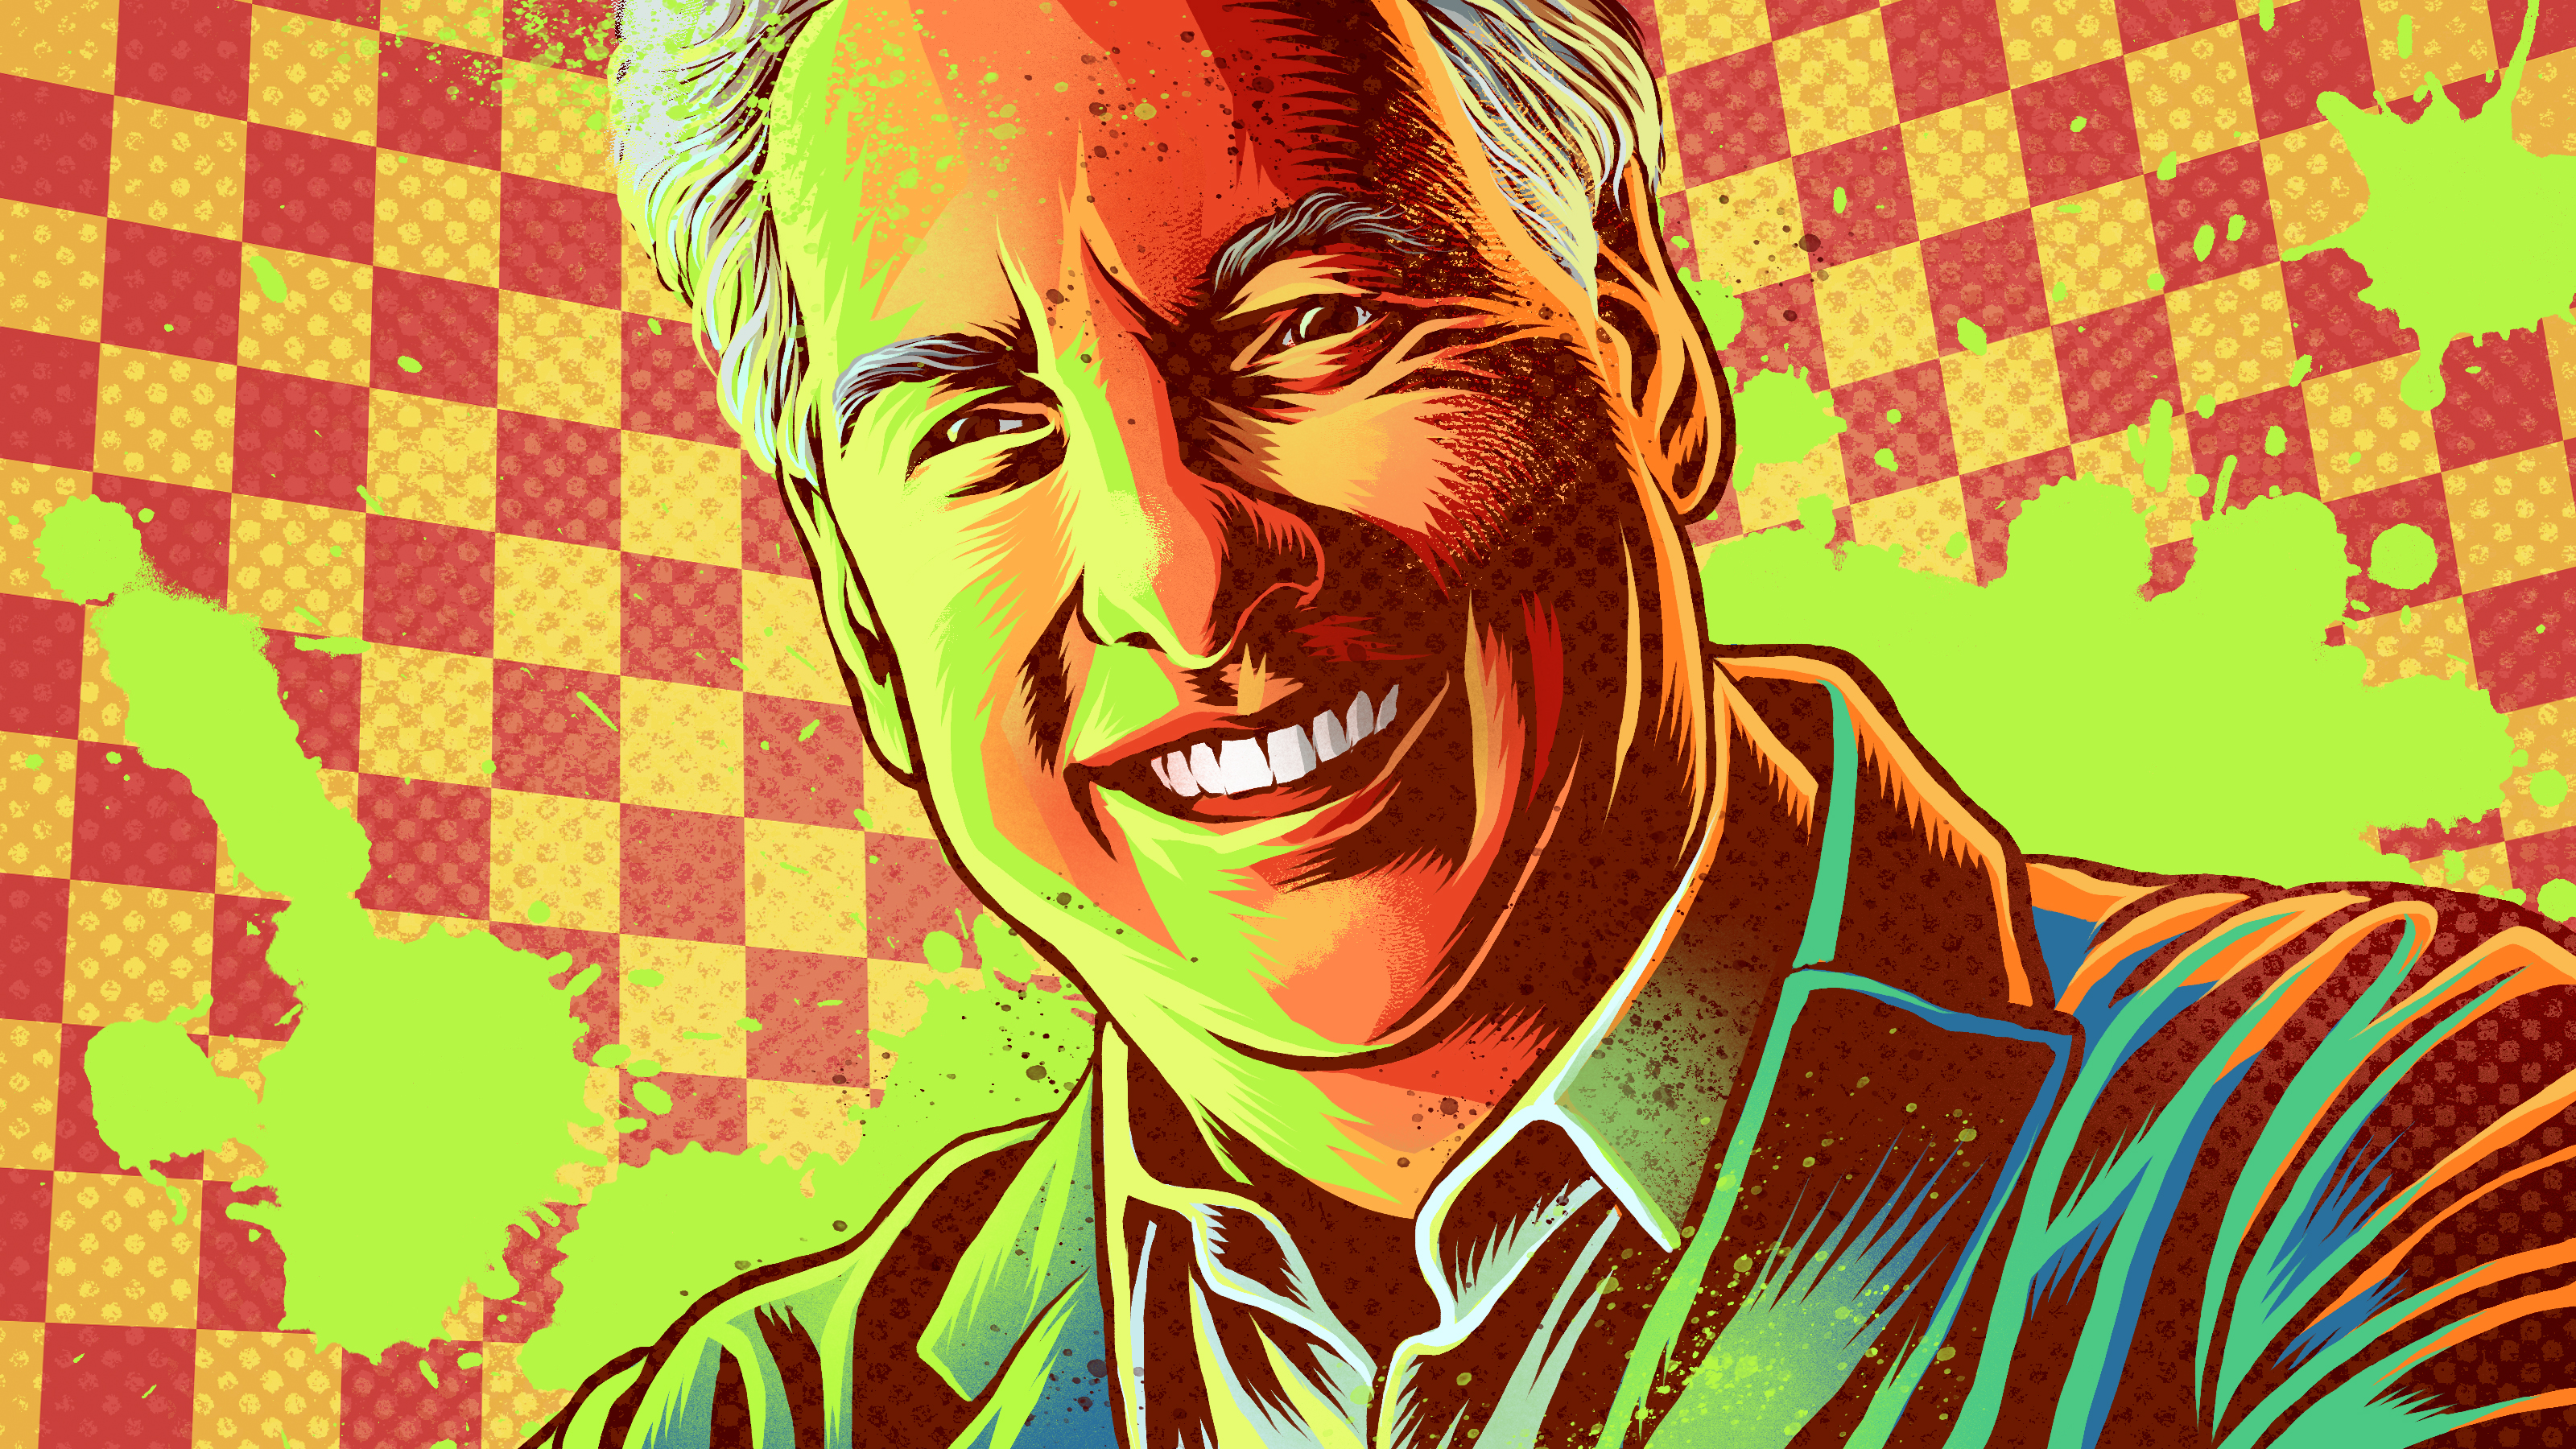 Marc Summers against a slime-splattered checkered background